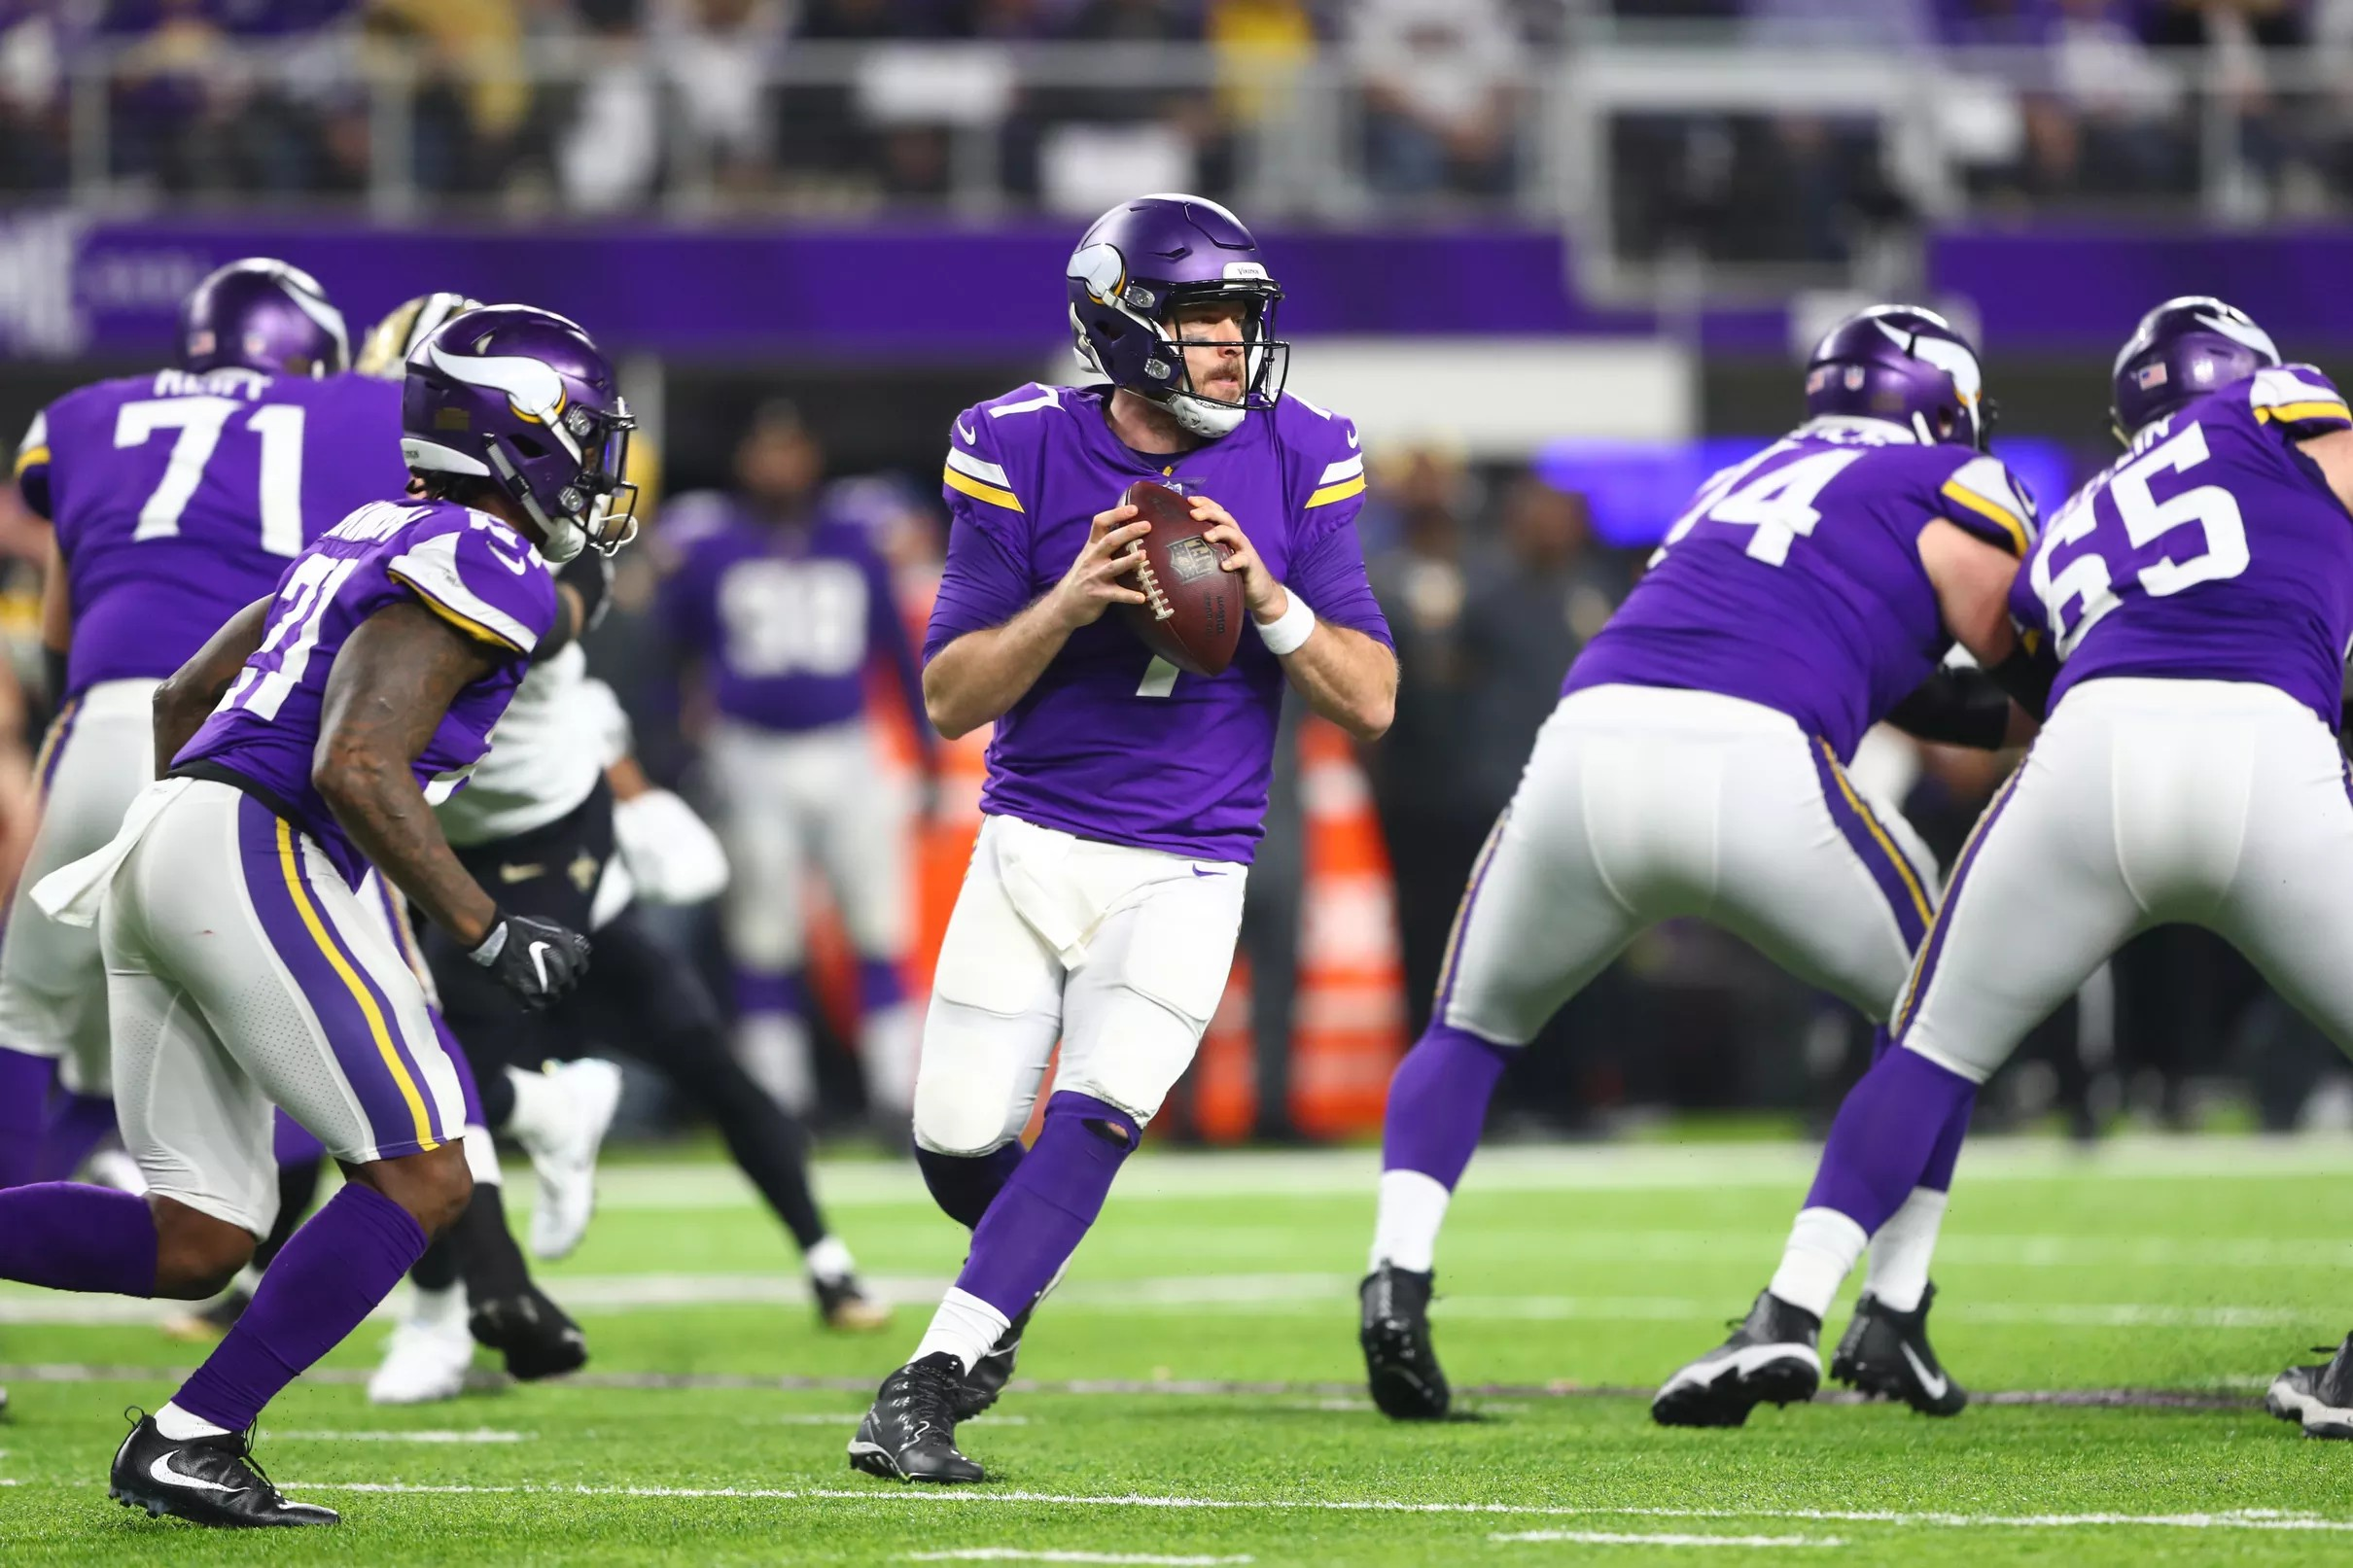 c7321ad25 Minnesota Vikings 29